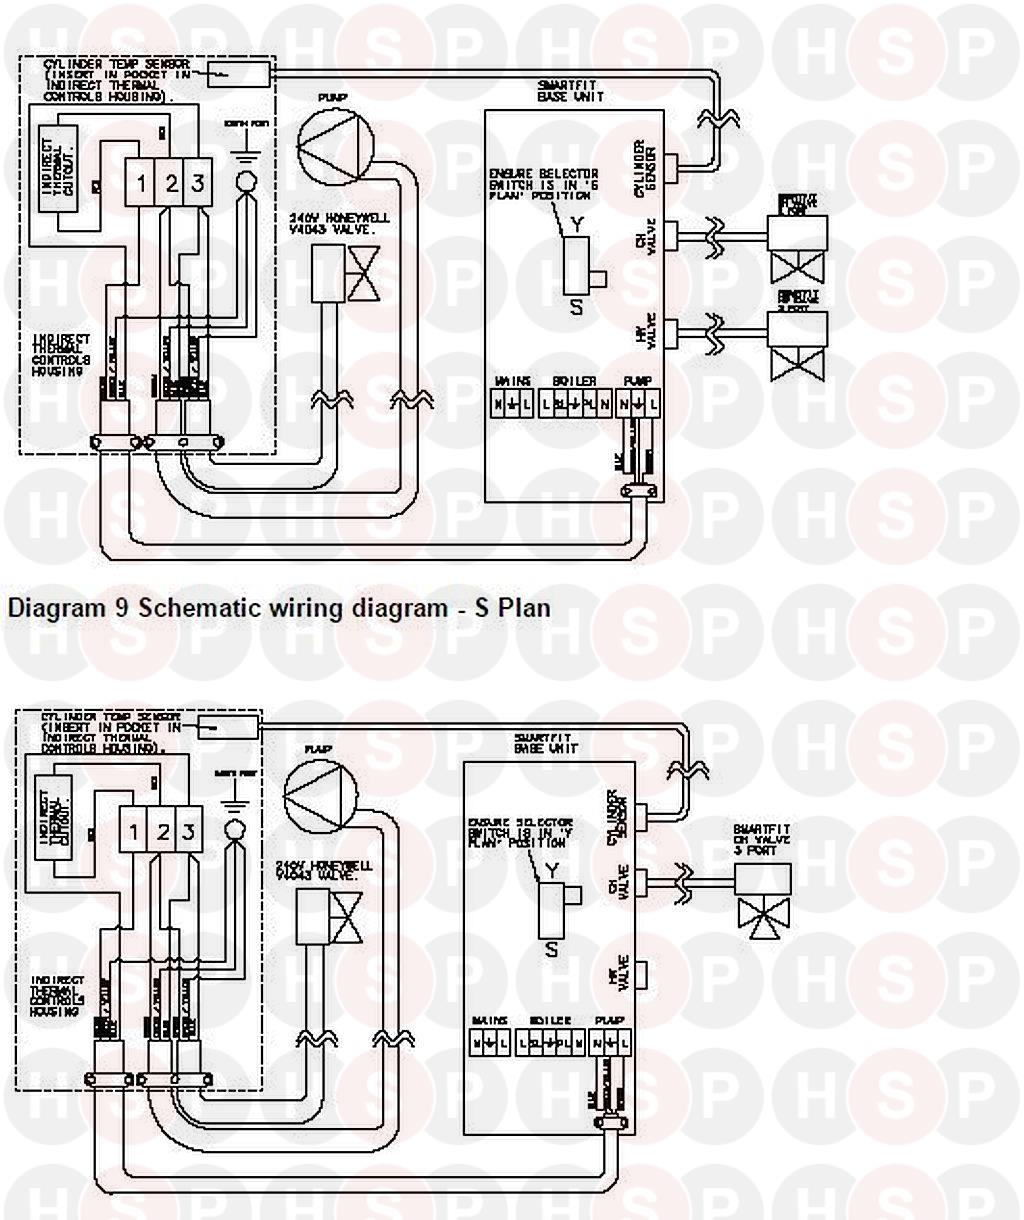 1504 megaflo unvented cylinder wiring diagram megaflo wiring rh diagram stockimages us Residential Electrical Wiring Diagrams Wiring Diagram Symbols